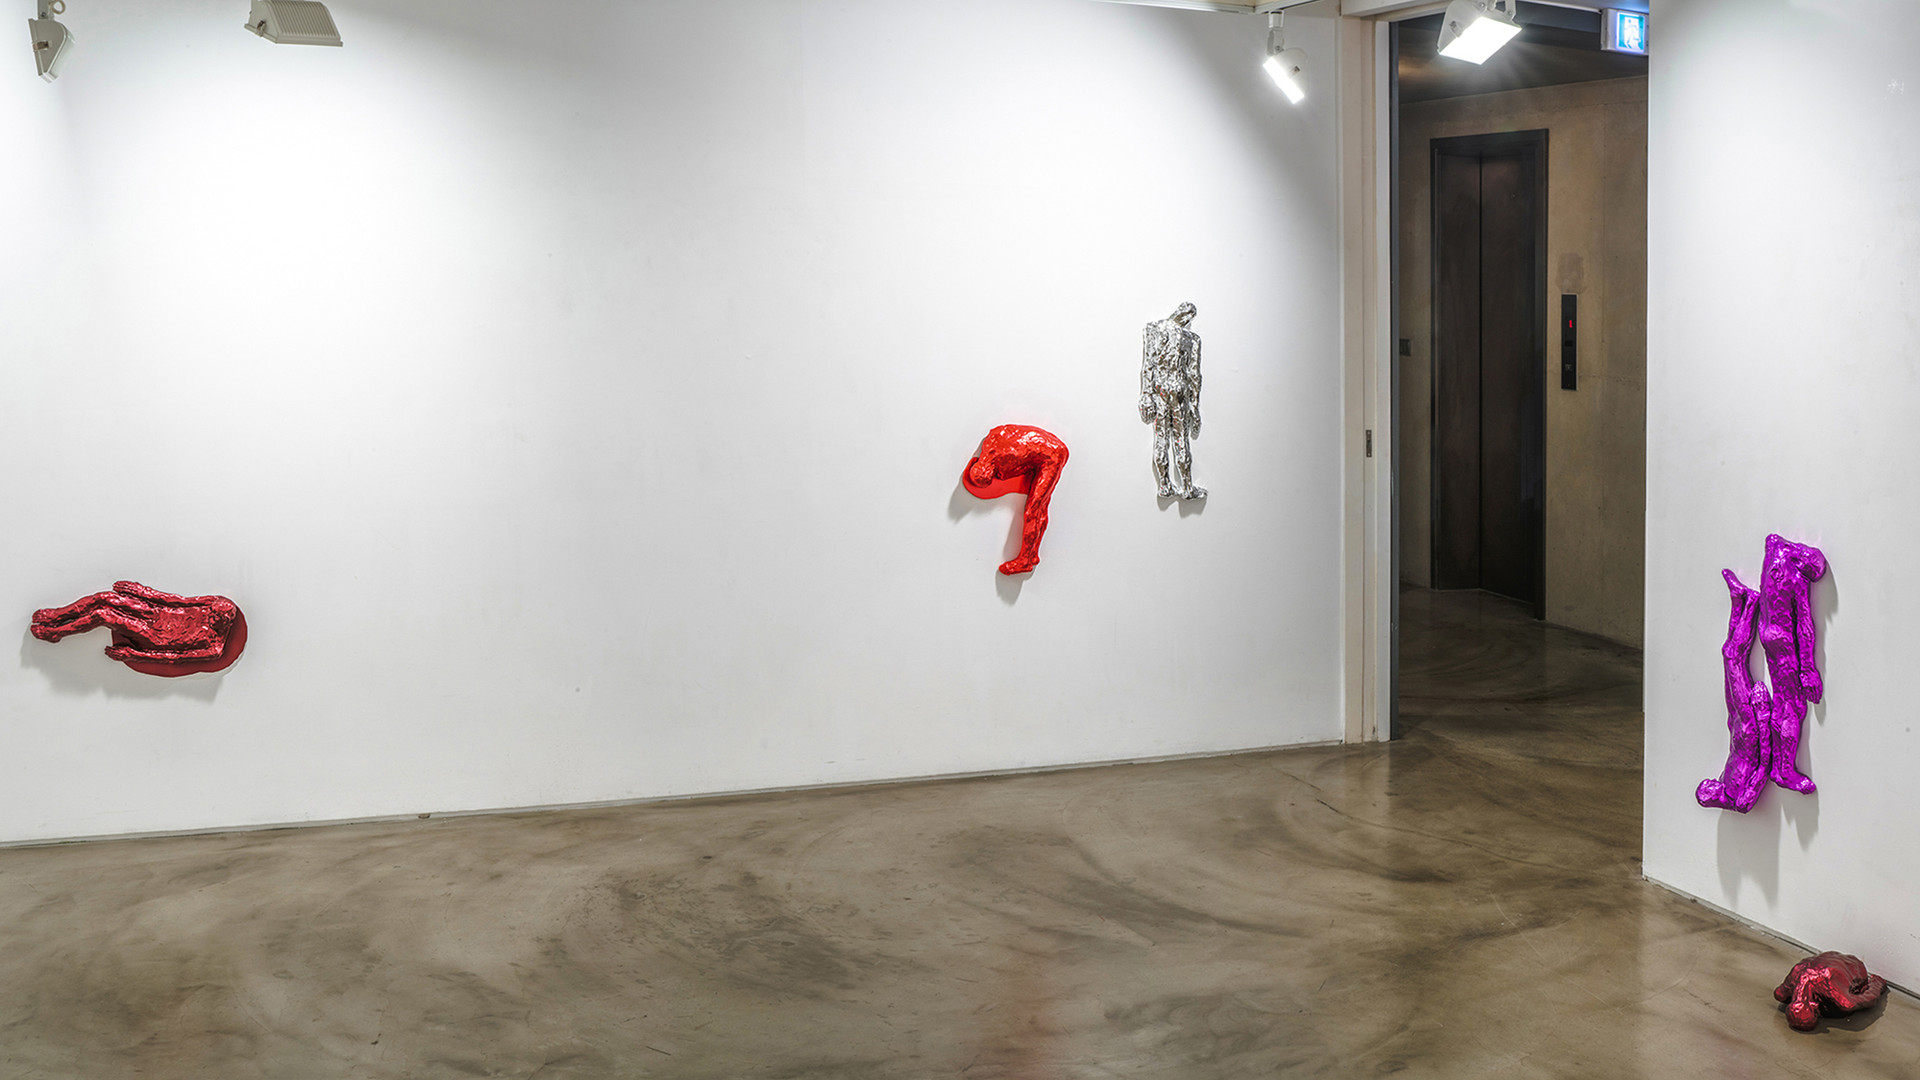 Installation view of Colorful Weights 彩色荷重, Gallery Simon, 2019